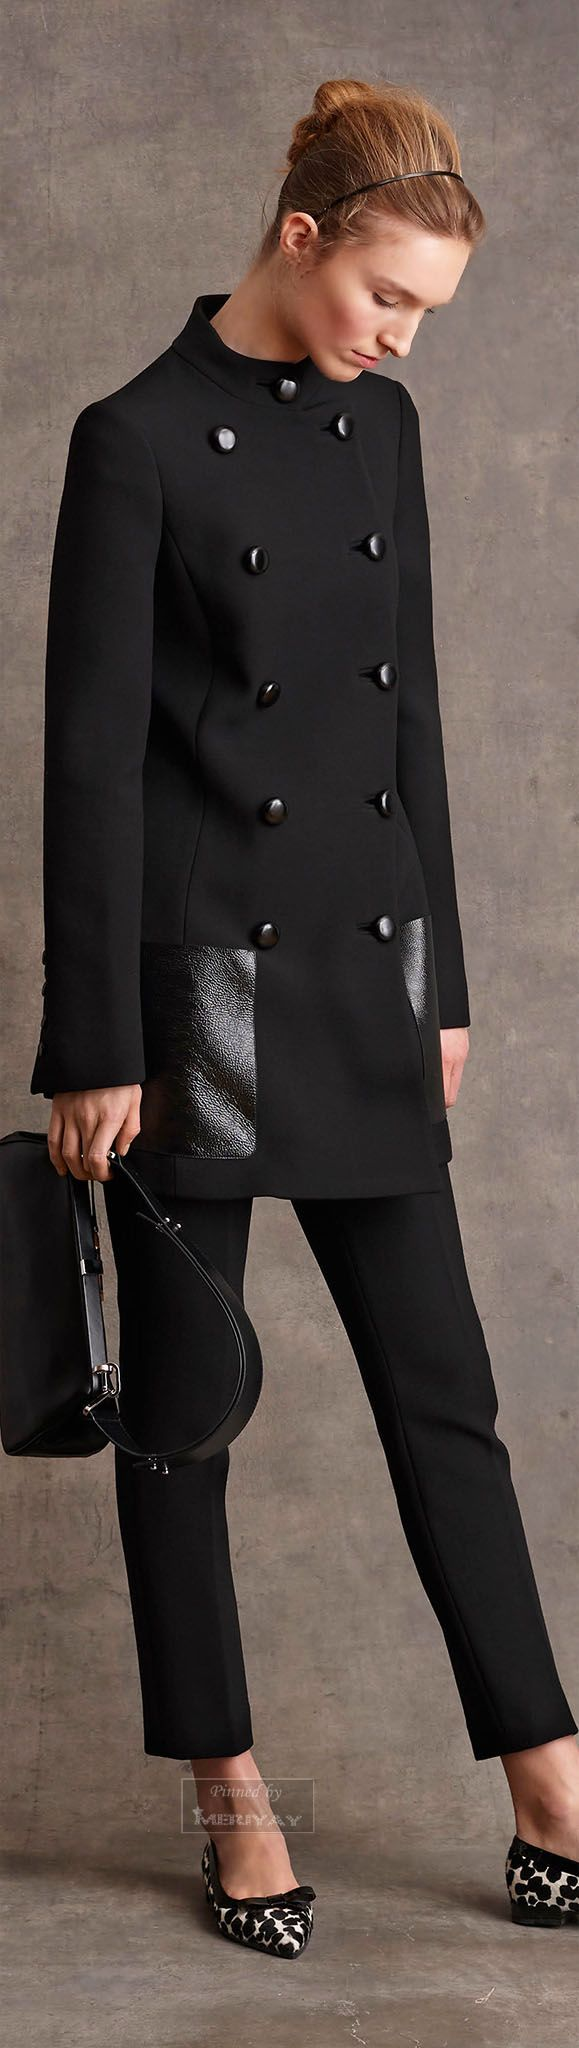 Michael Kors.Pre-Fall 2015.                                                                                                                                                                                 More